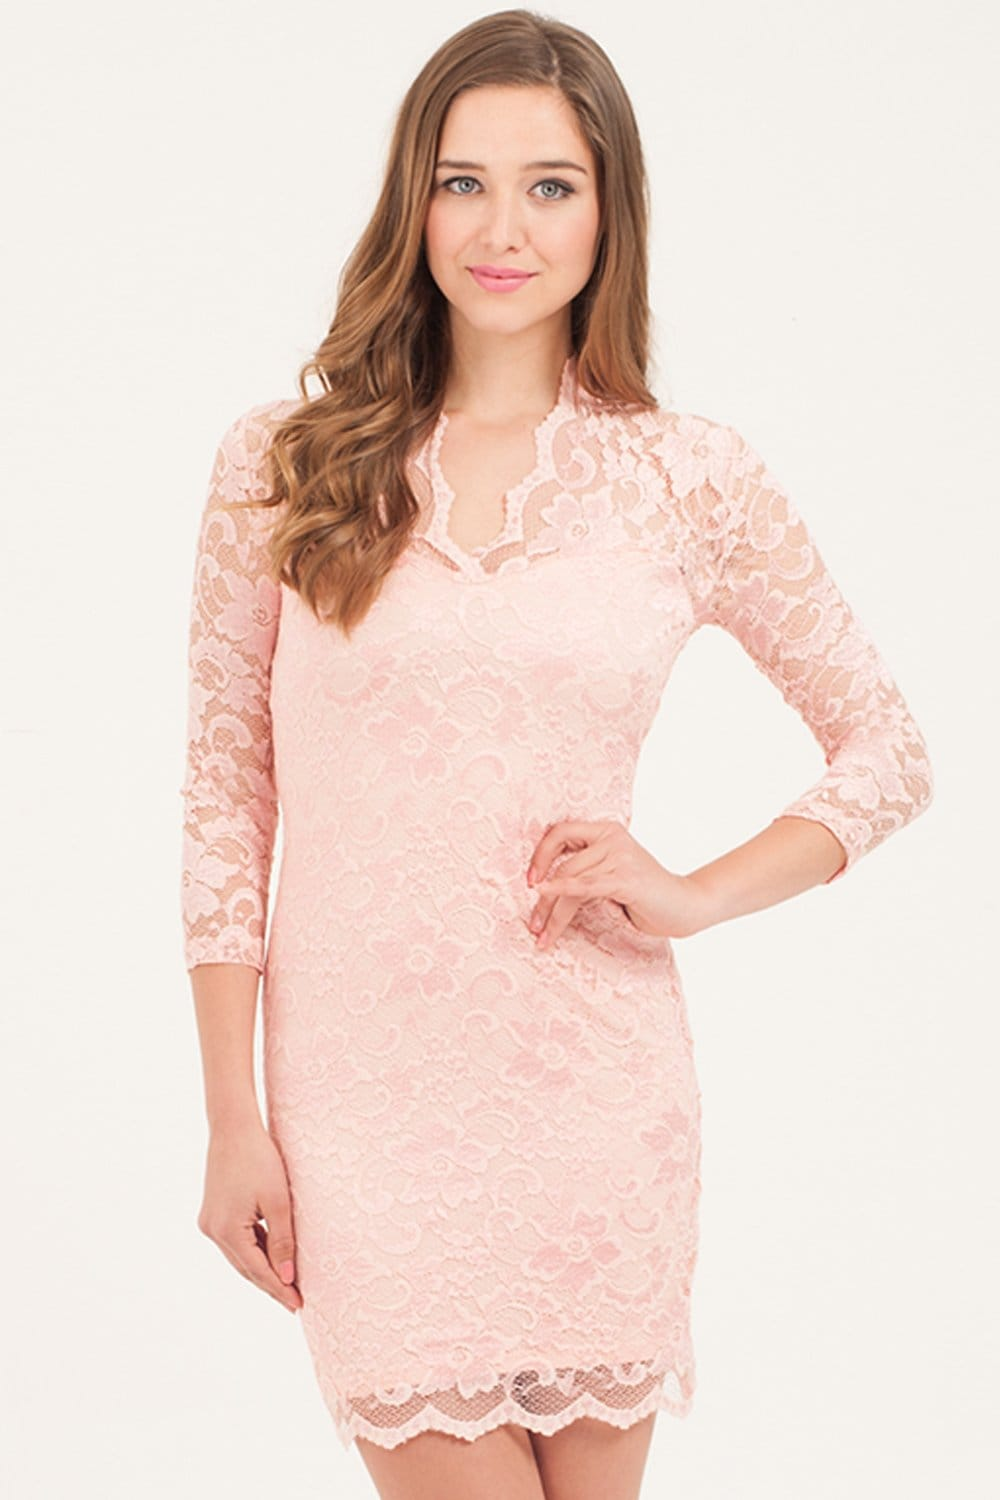 Pink lace summer dress matchless message